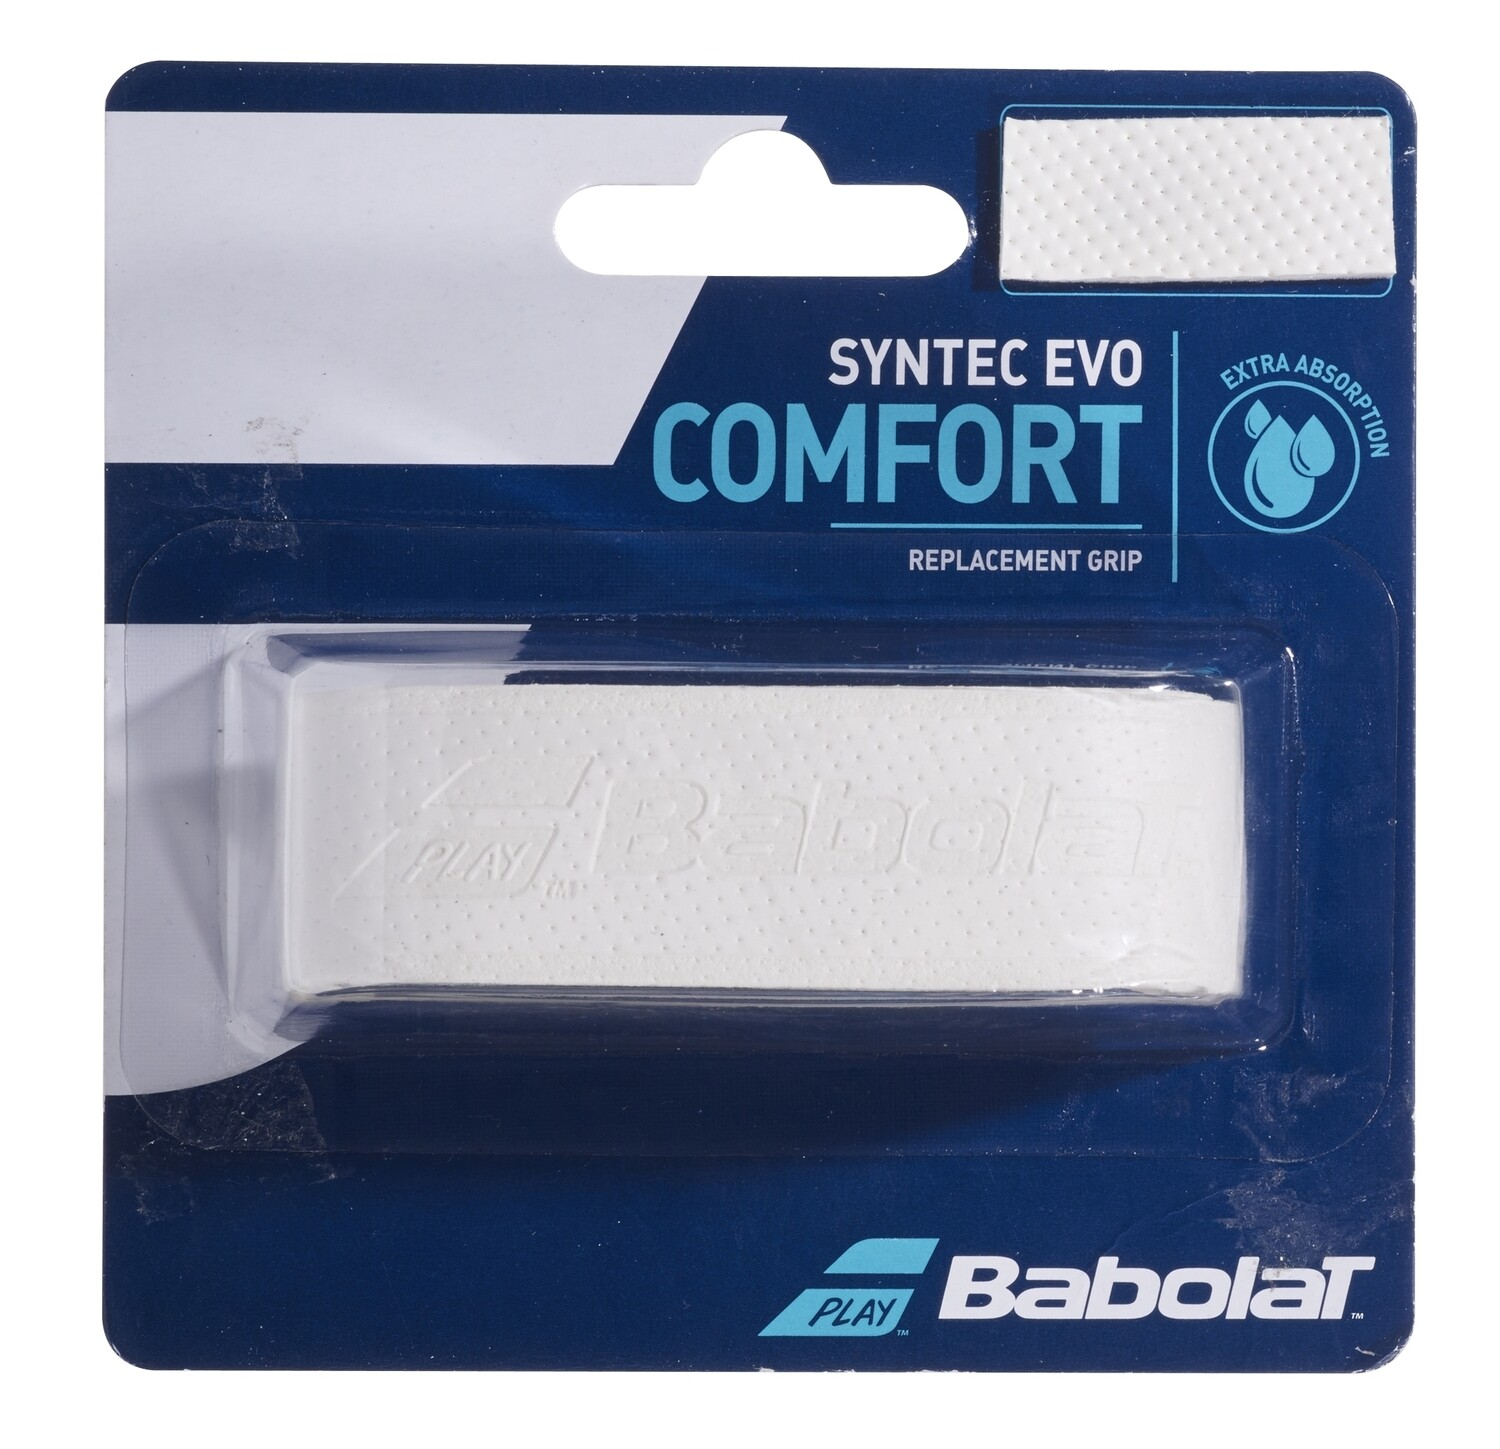 Babolat Syntec Evo Comfort Replacement Grip - White